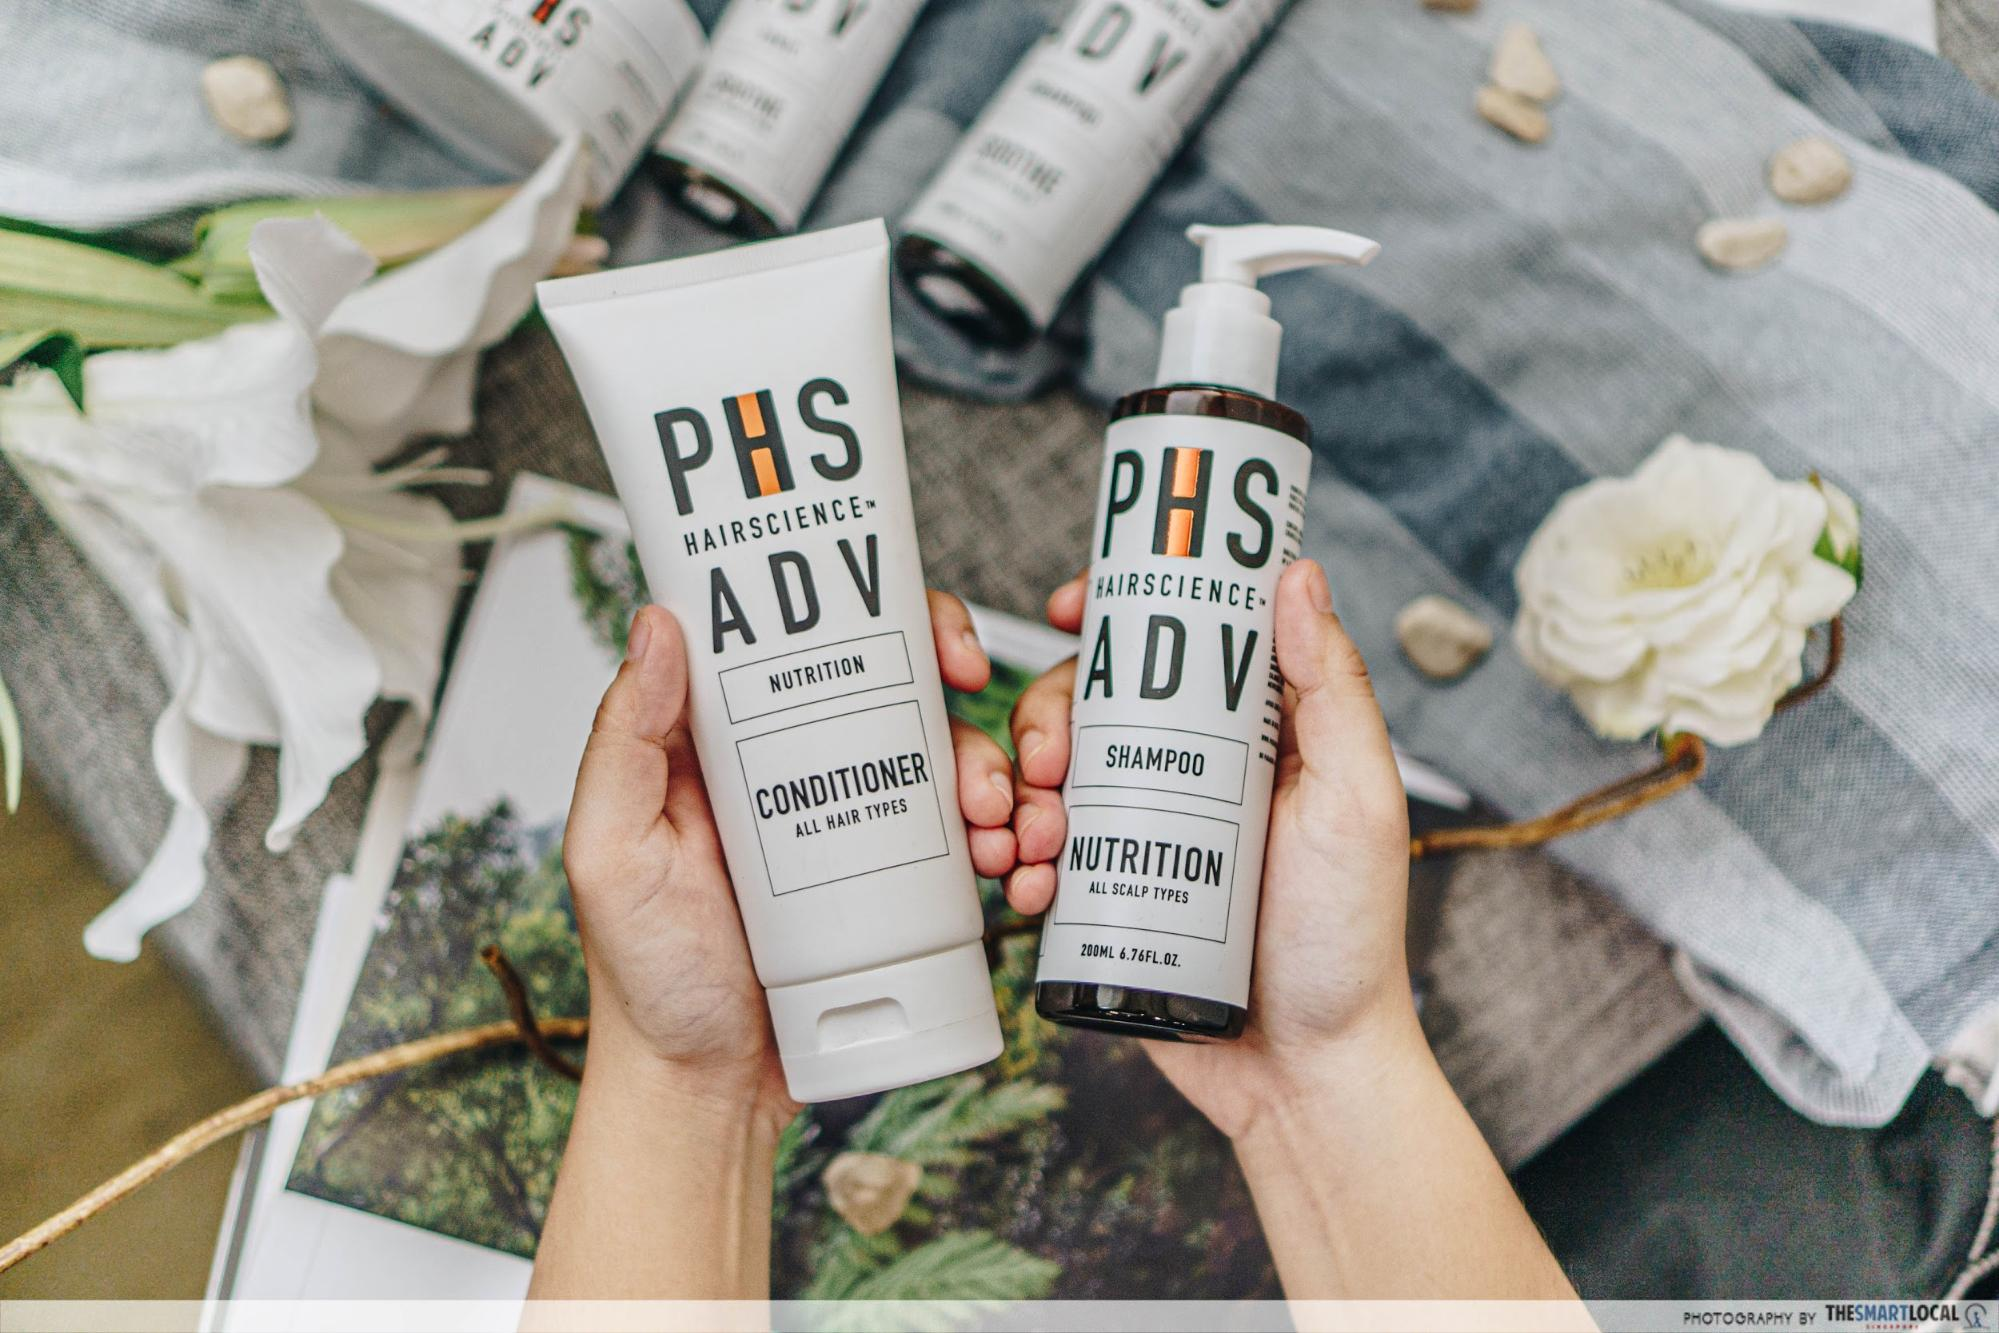 phs hairscience hair washing mistakes adv soothe